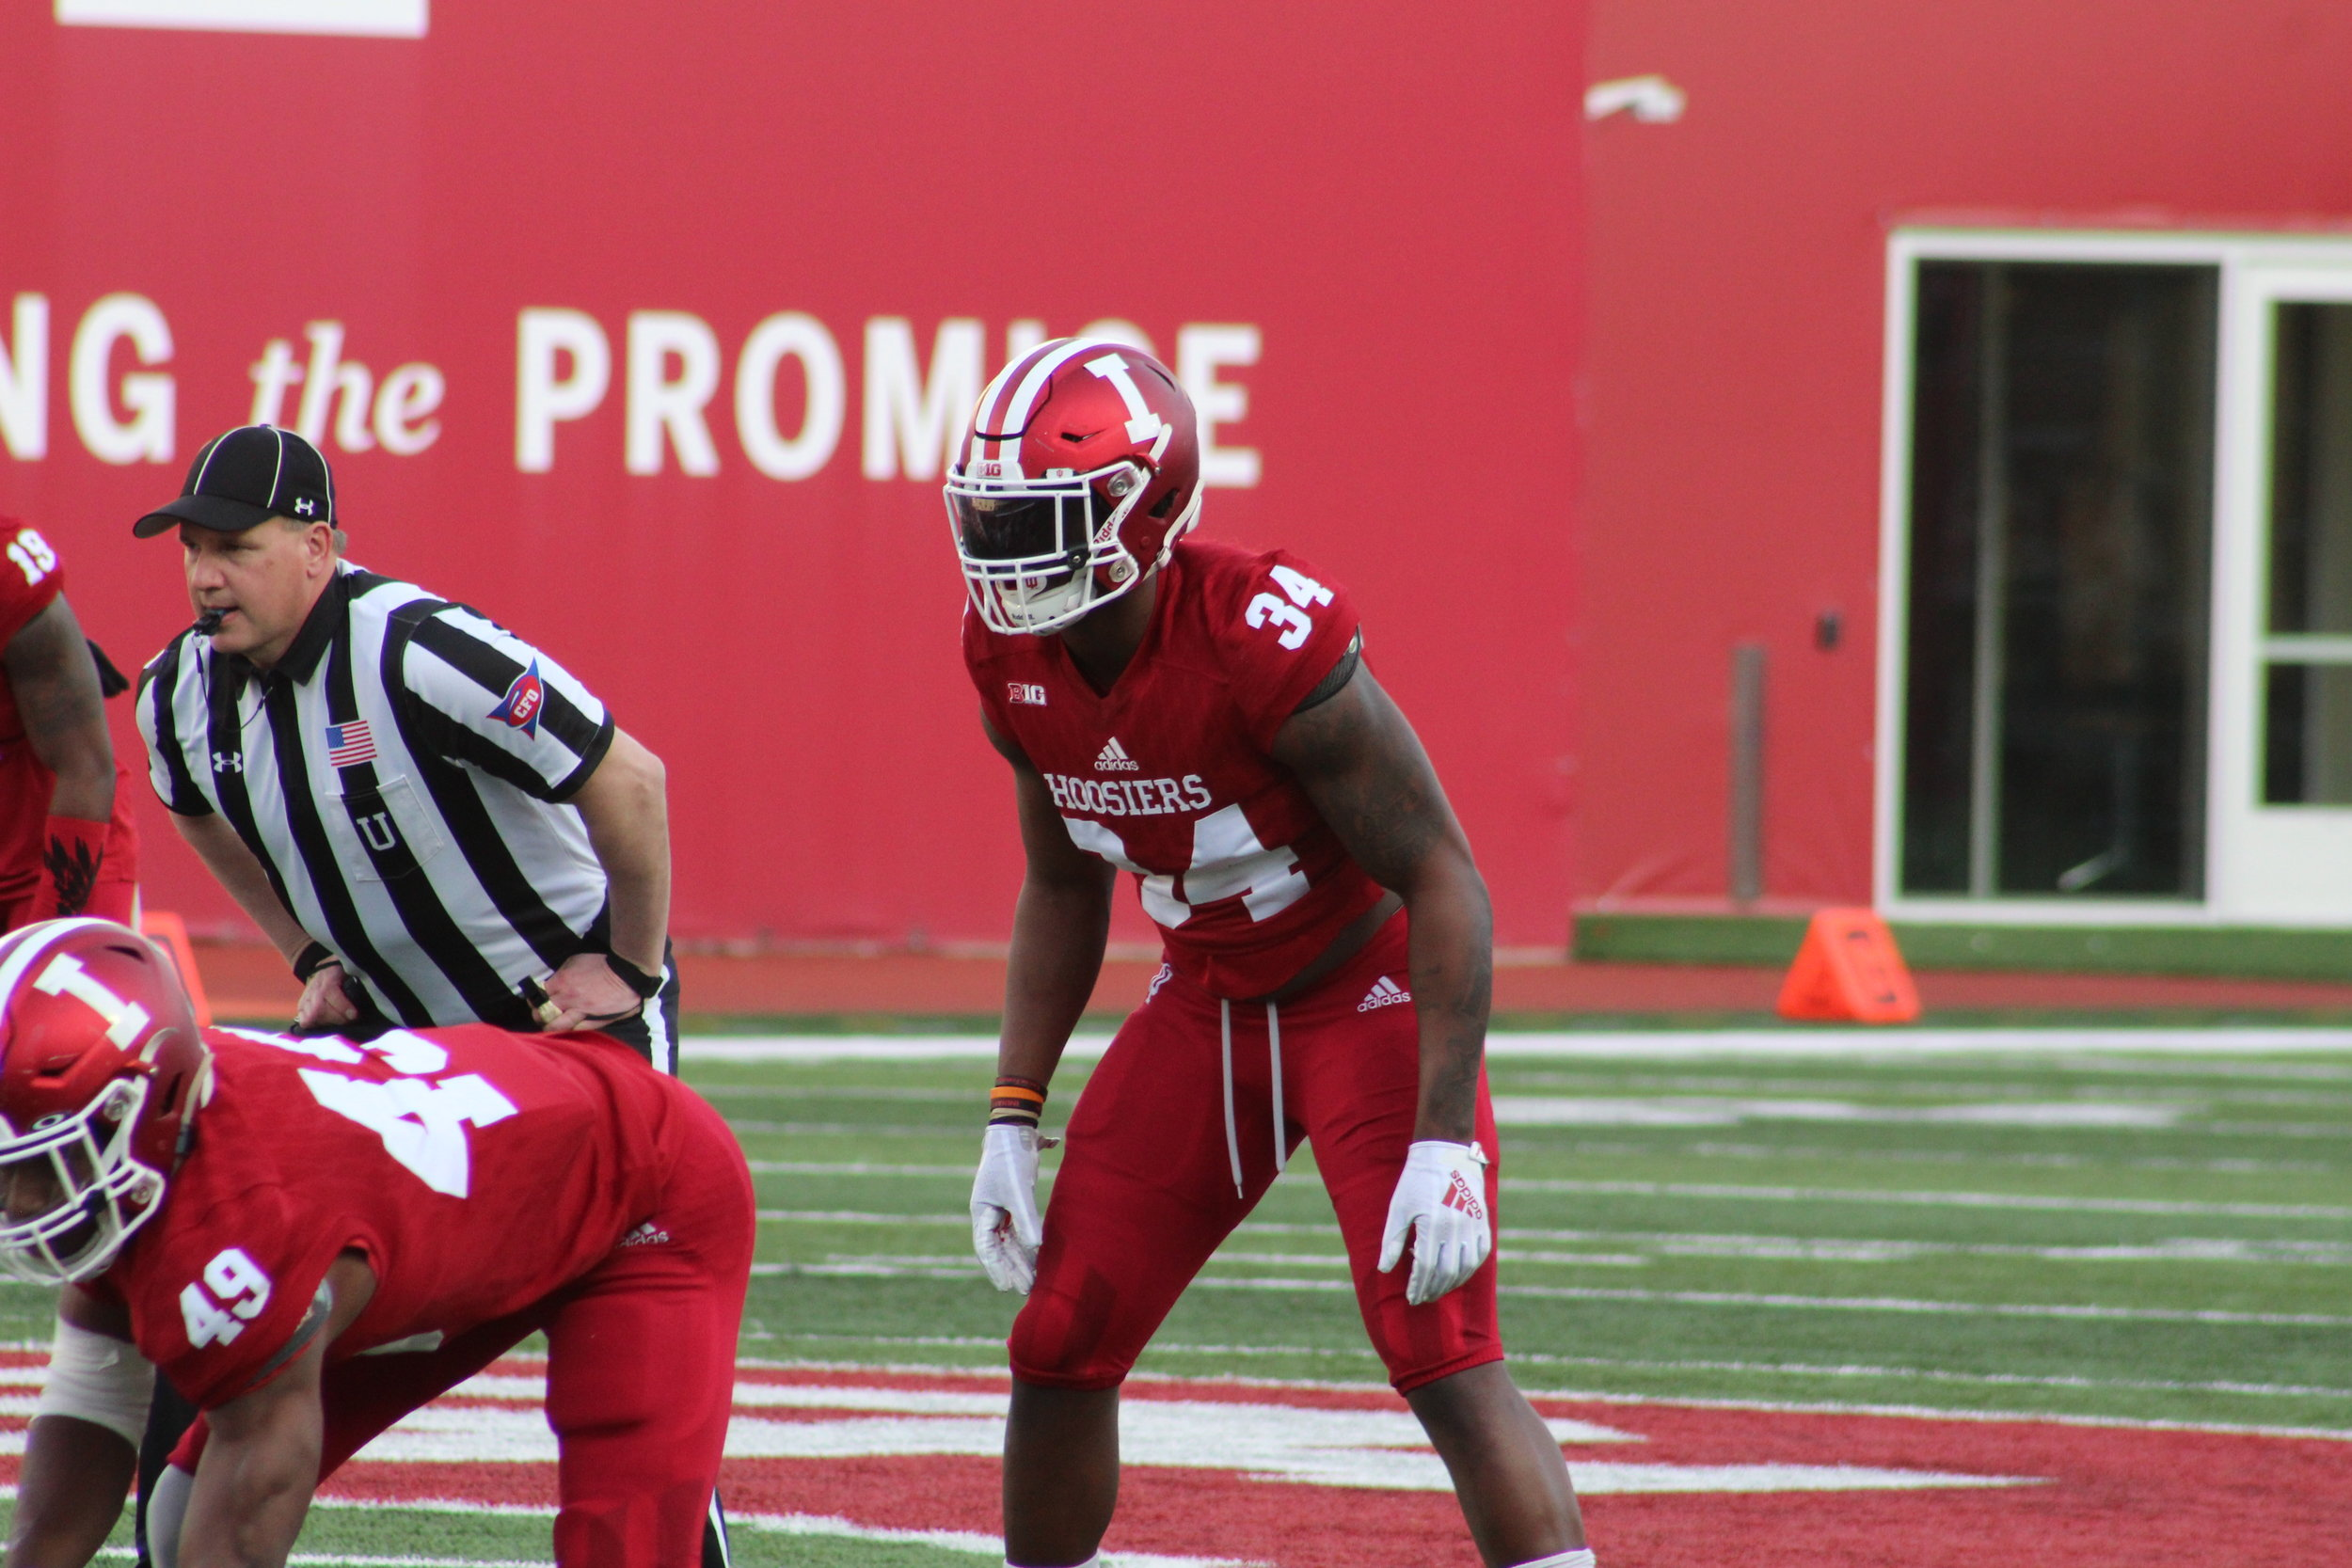 Cam Jones (34) and Madison Norris (49) during IU's spring game  Image: Sammy Jacobs Hoosier Huddle